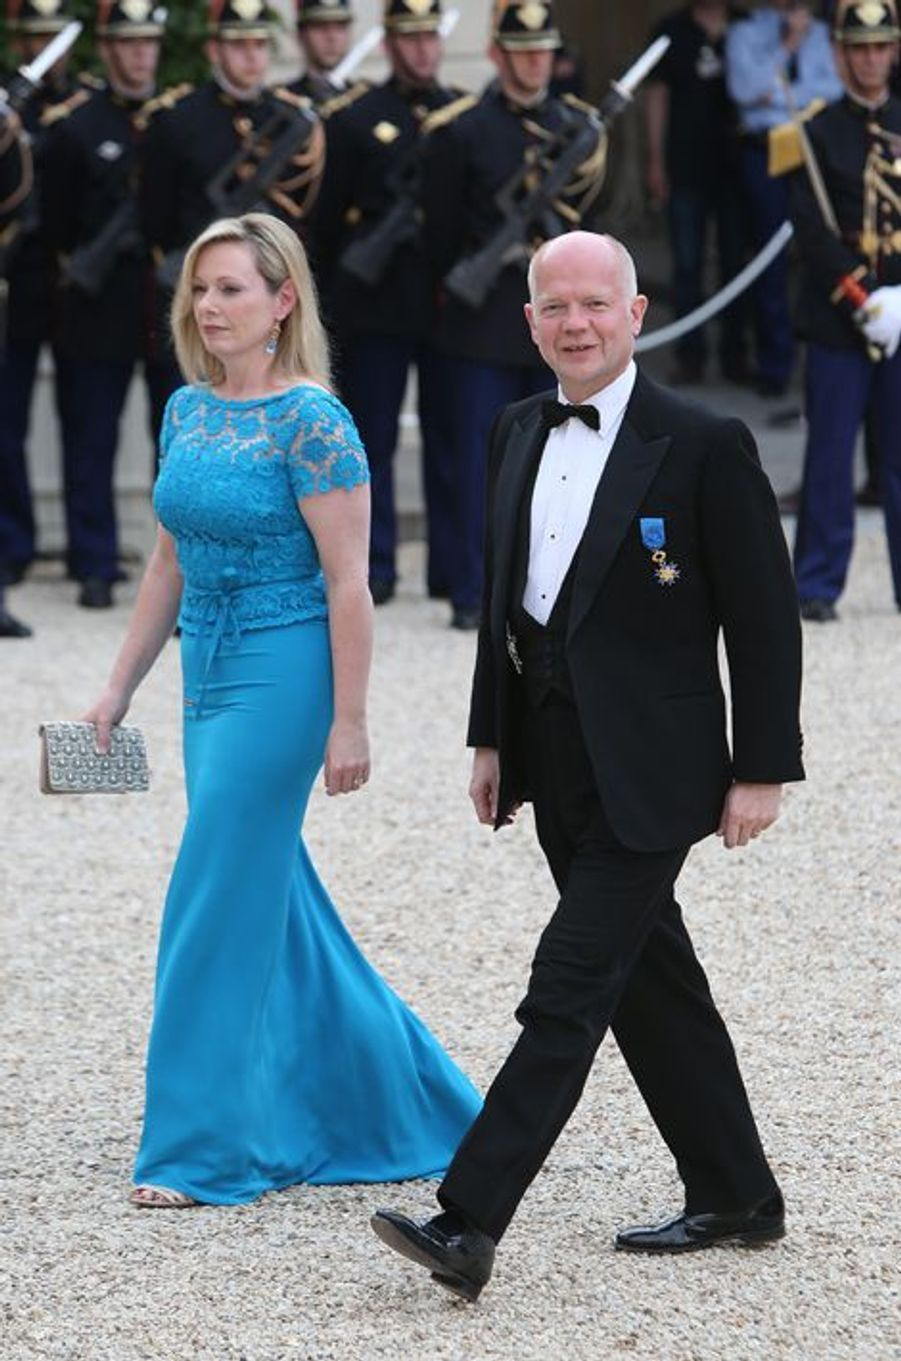 William Hague et son épouse